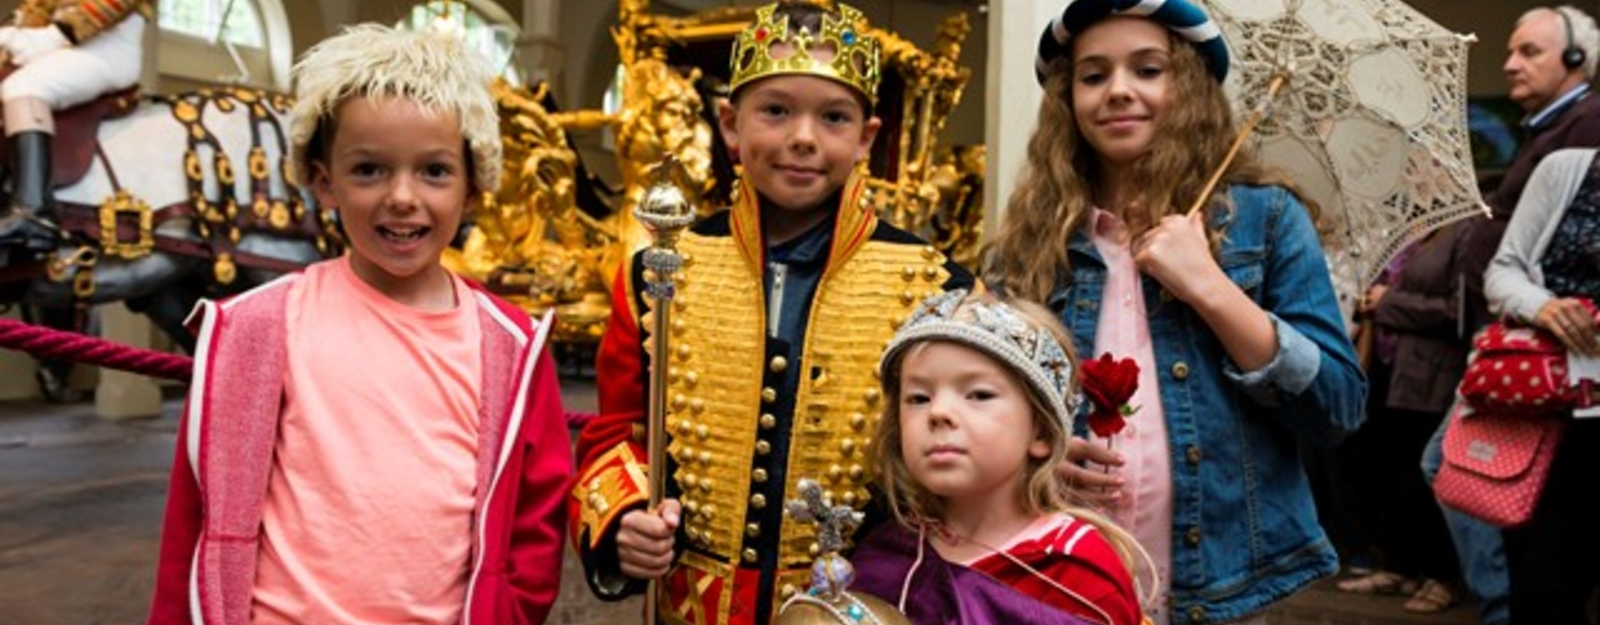 Children try on costumes at The Royal Mews, Buckingham Palace